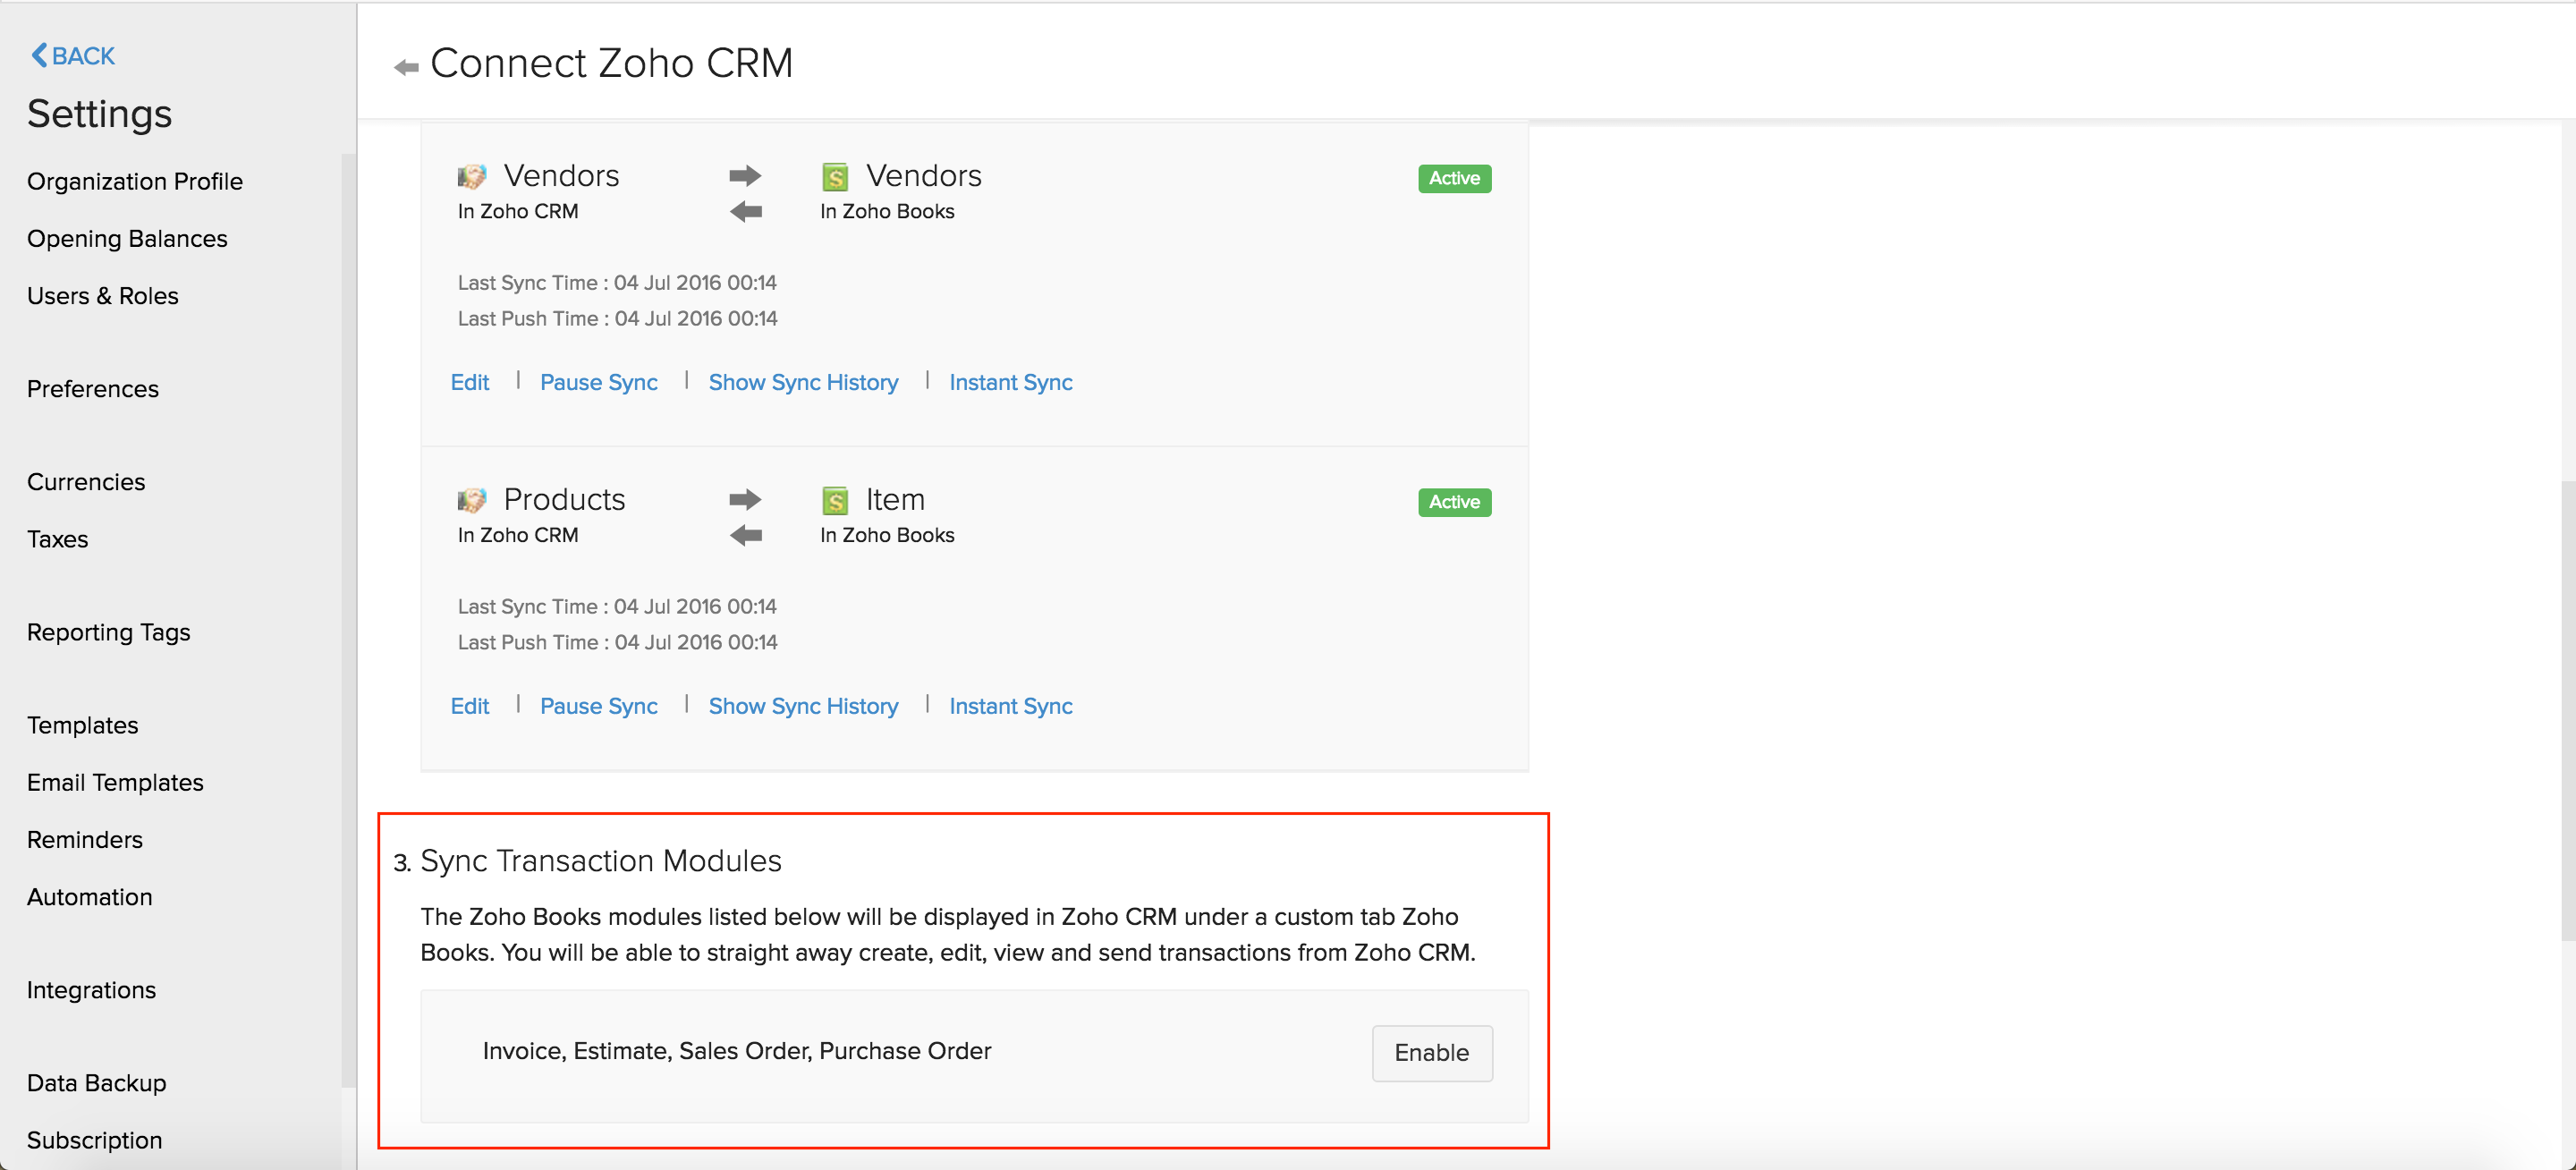 Zoho Books module in CRM